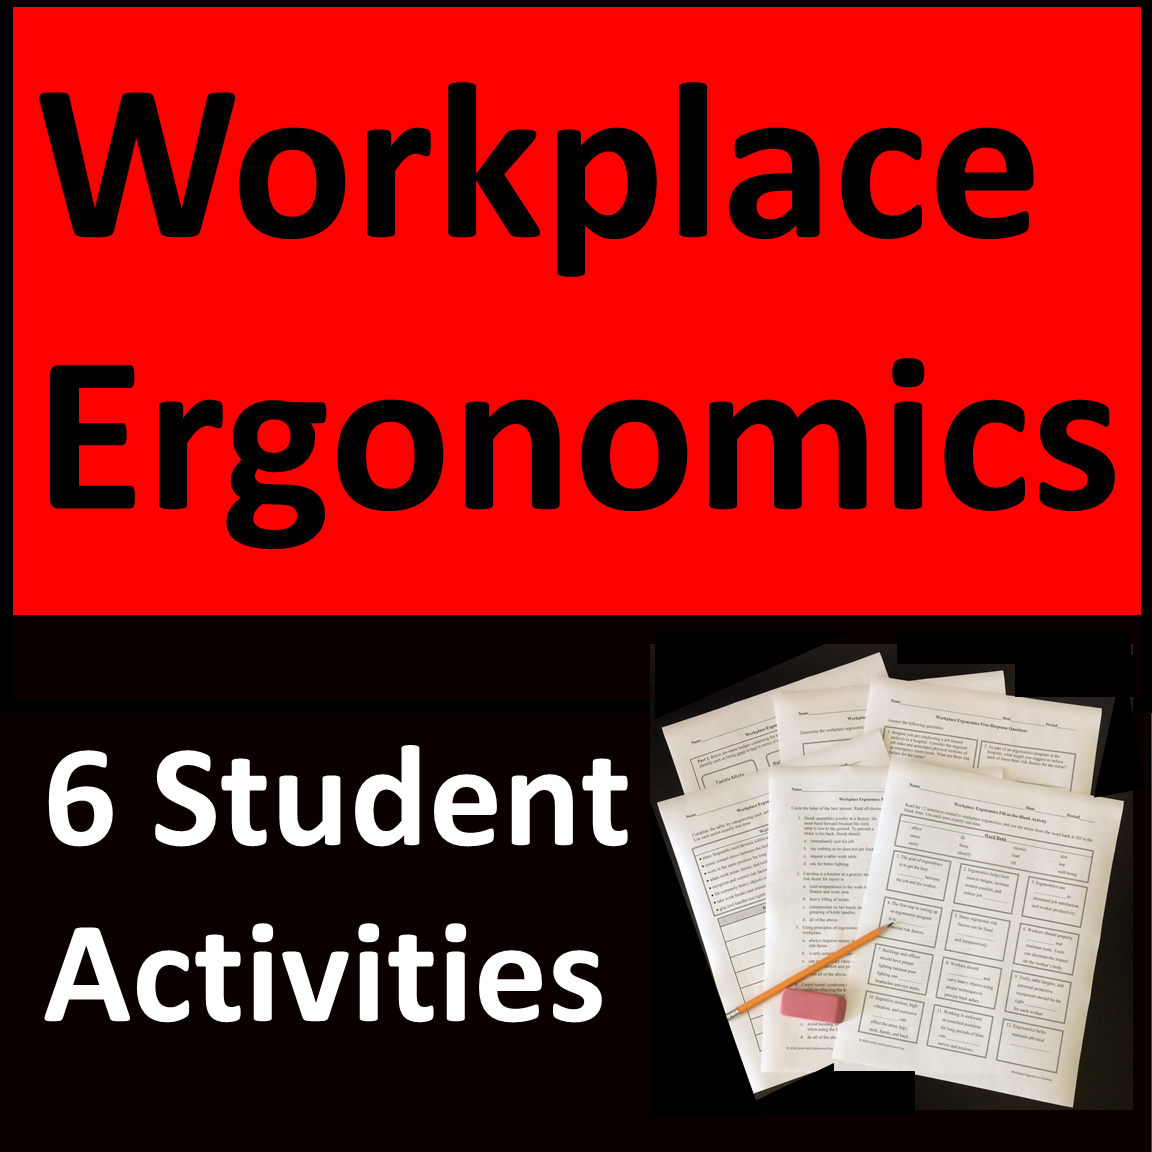 Workplace Ergonomics Activities For Students